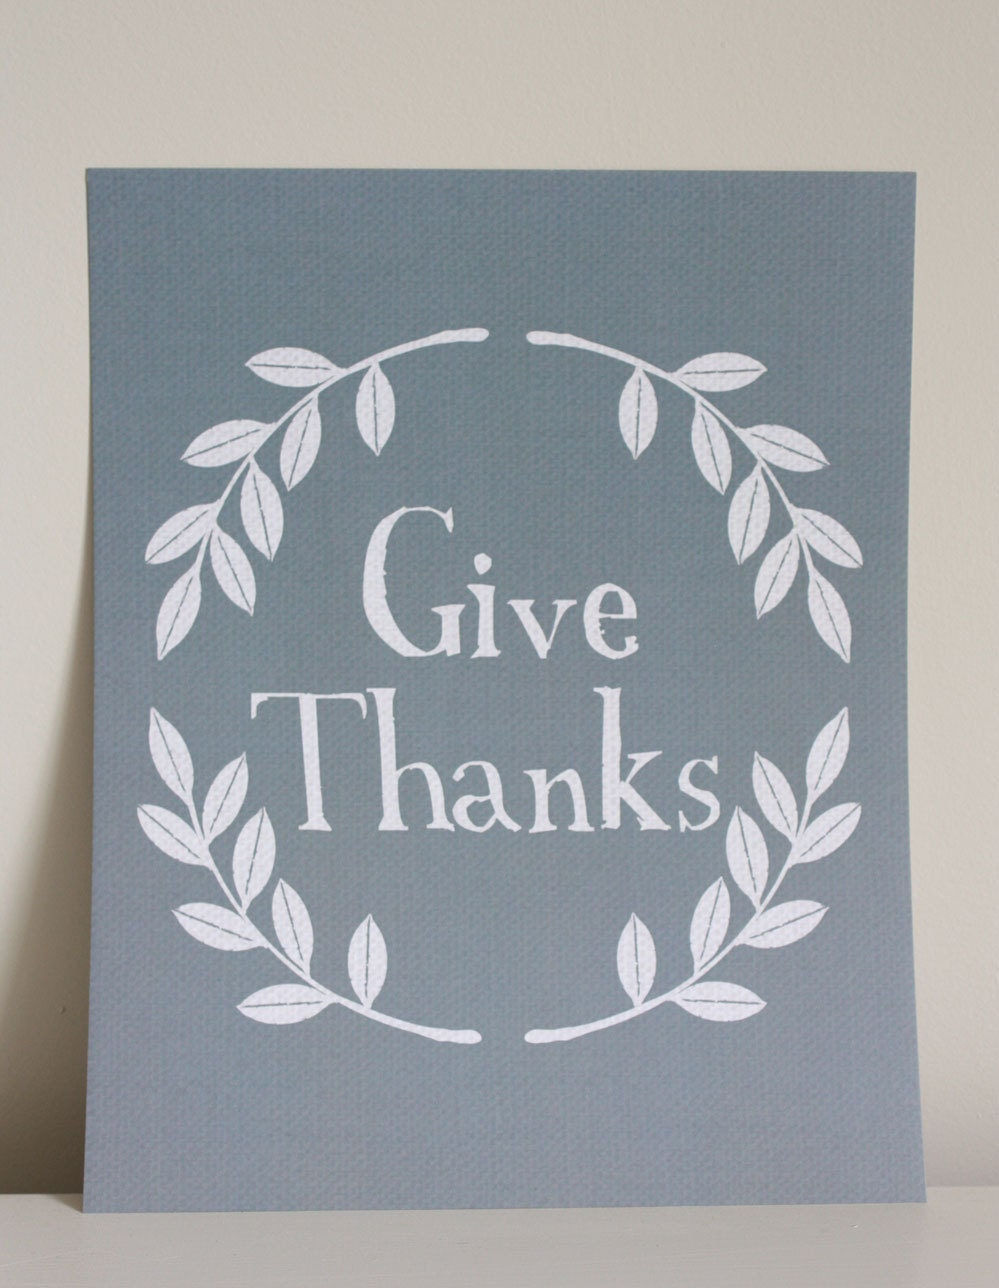 8x10 Give Thanks print